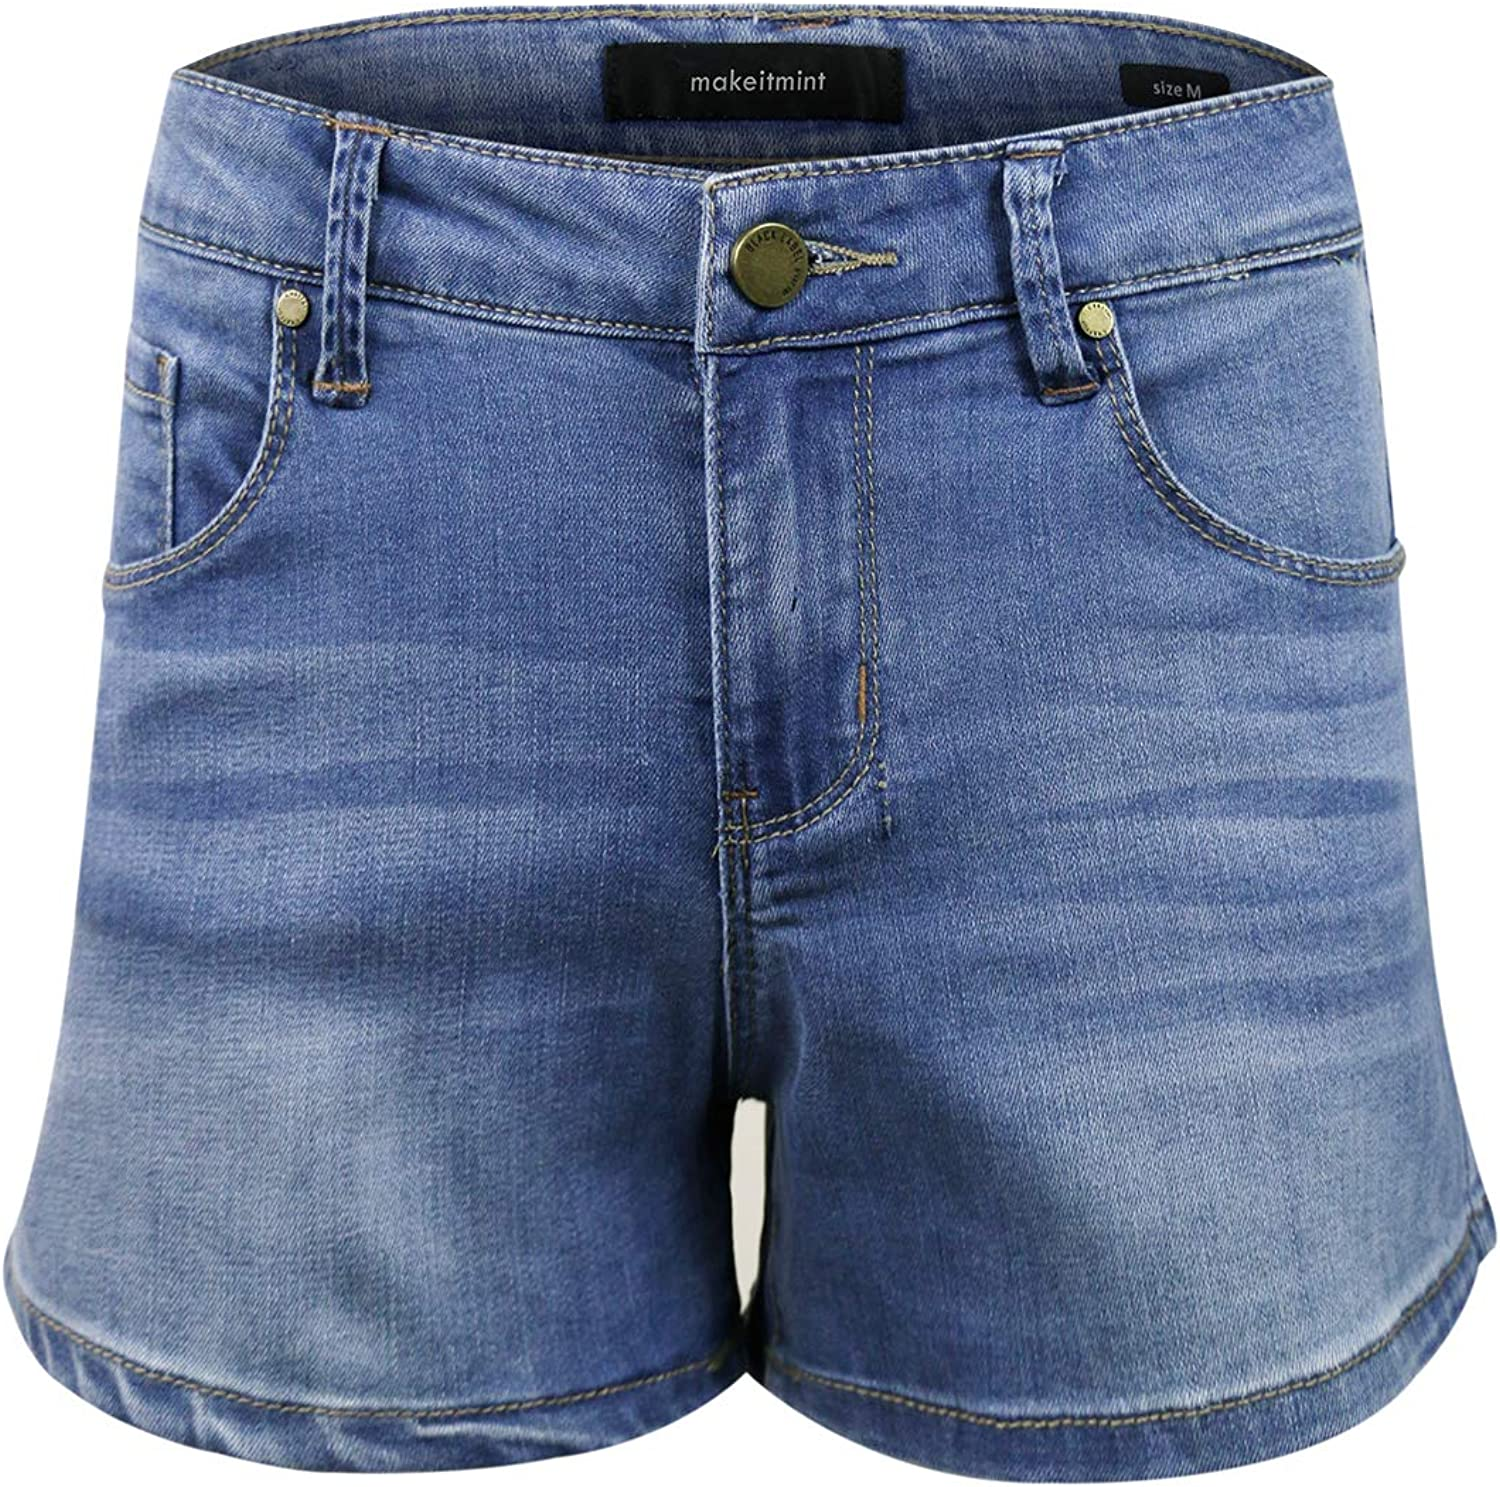 Makeitmint Women's Basic Casual Classic MidRise Denim Jean Pant Shorts [S3XL]